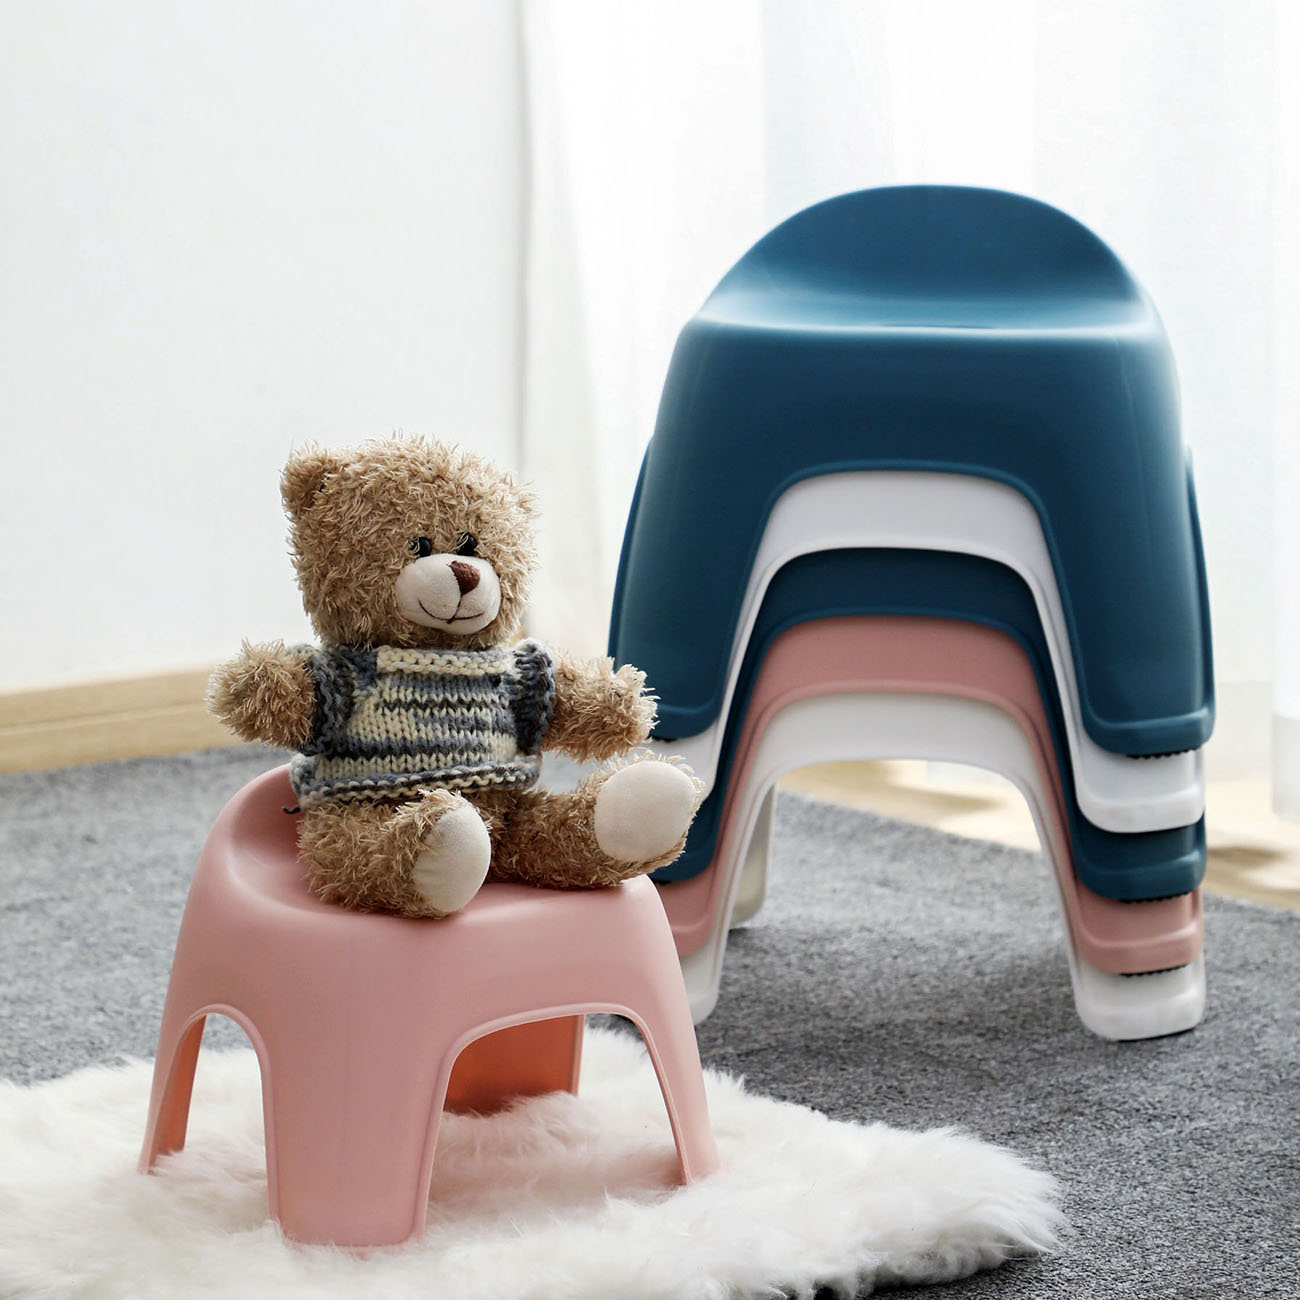 Thicken Baby Kids Stool Plastic Backrest Stool Living Room Non-slip Change Shoe Bench Kindergarten Kids Child Study Stool